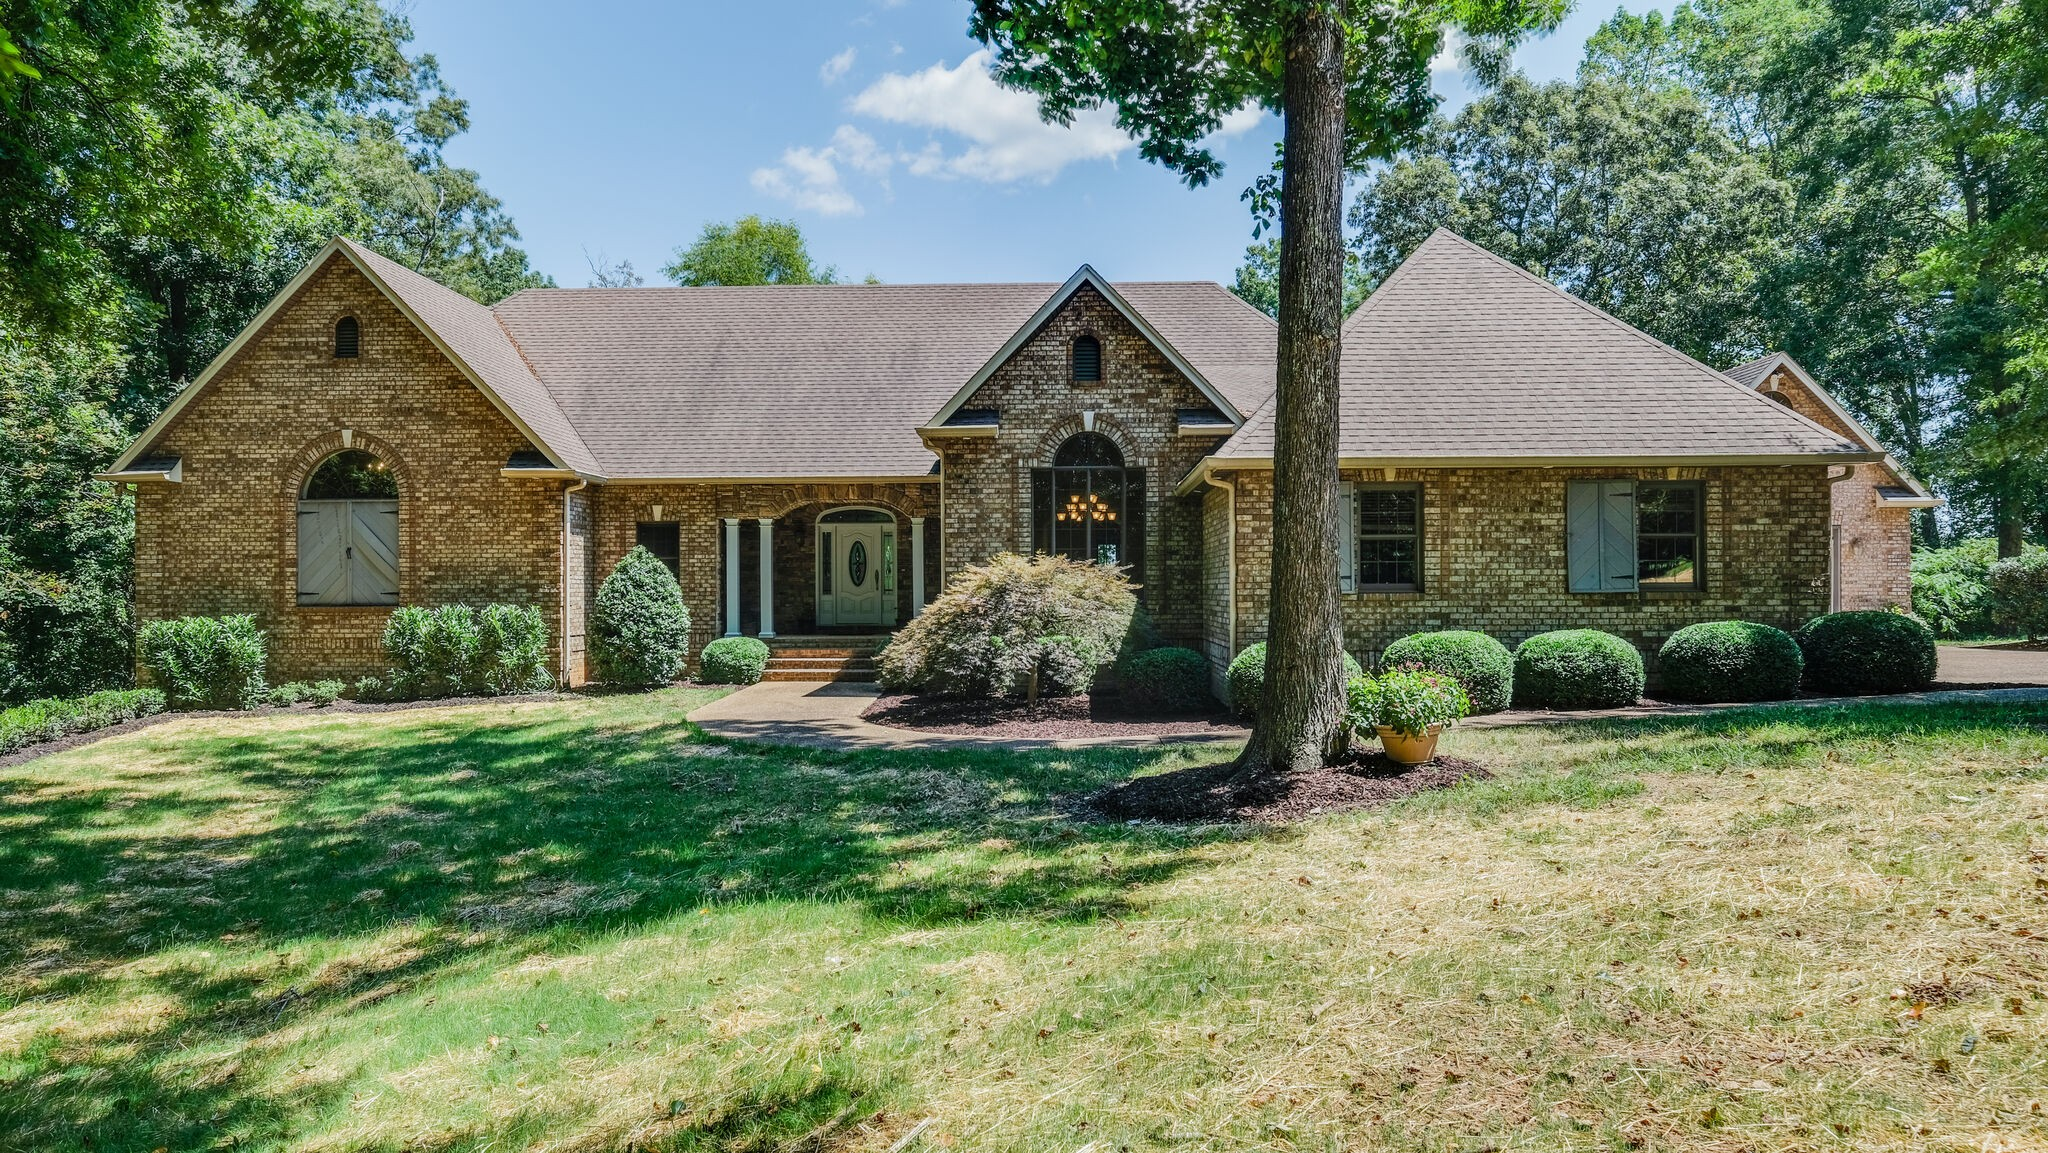 352 Kacey Marie Dr Property Photo - Winchester, TN real estate listing